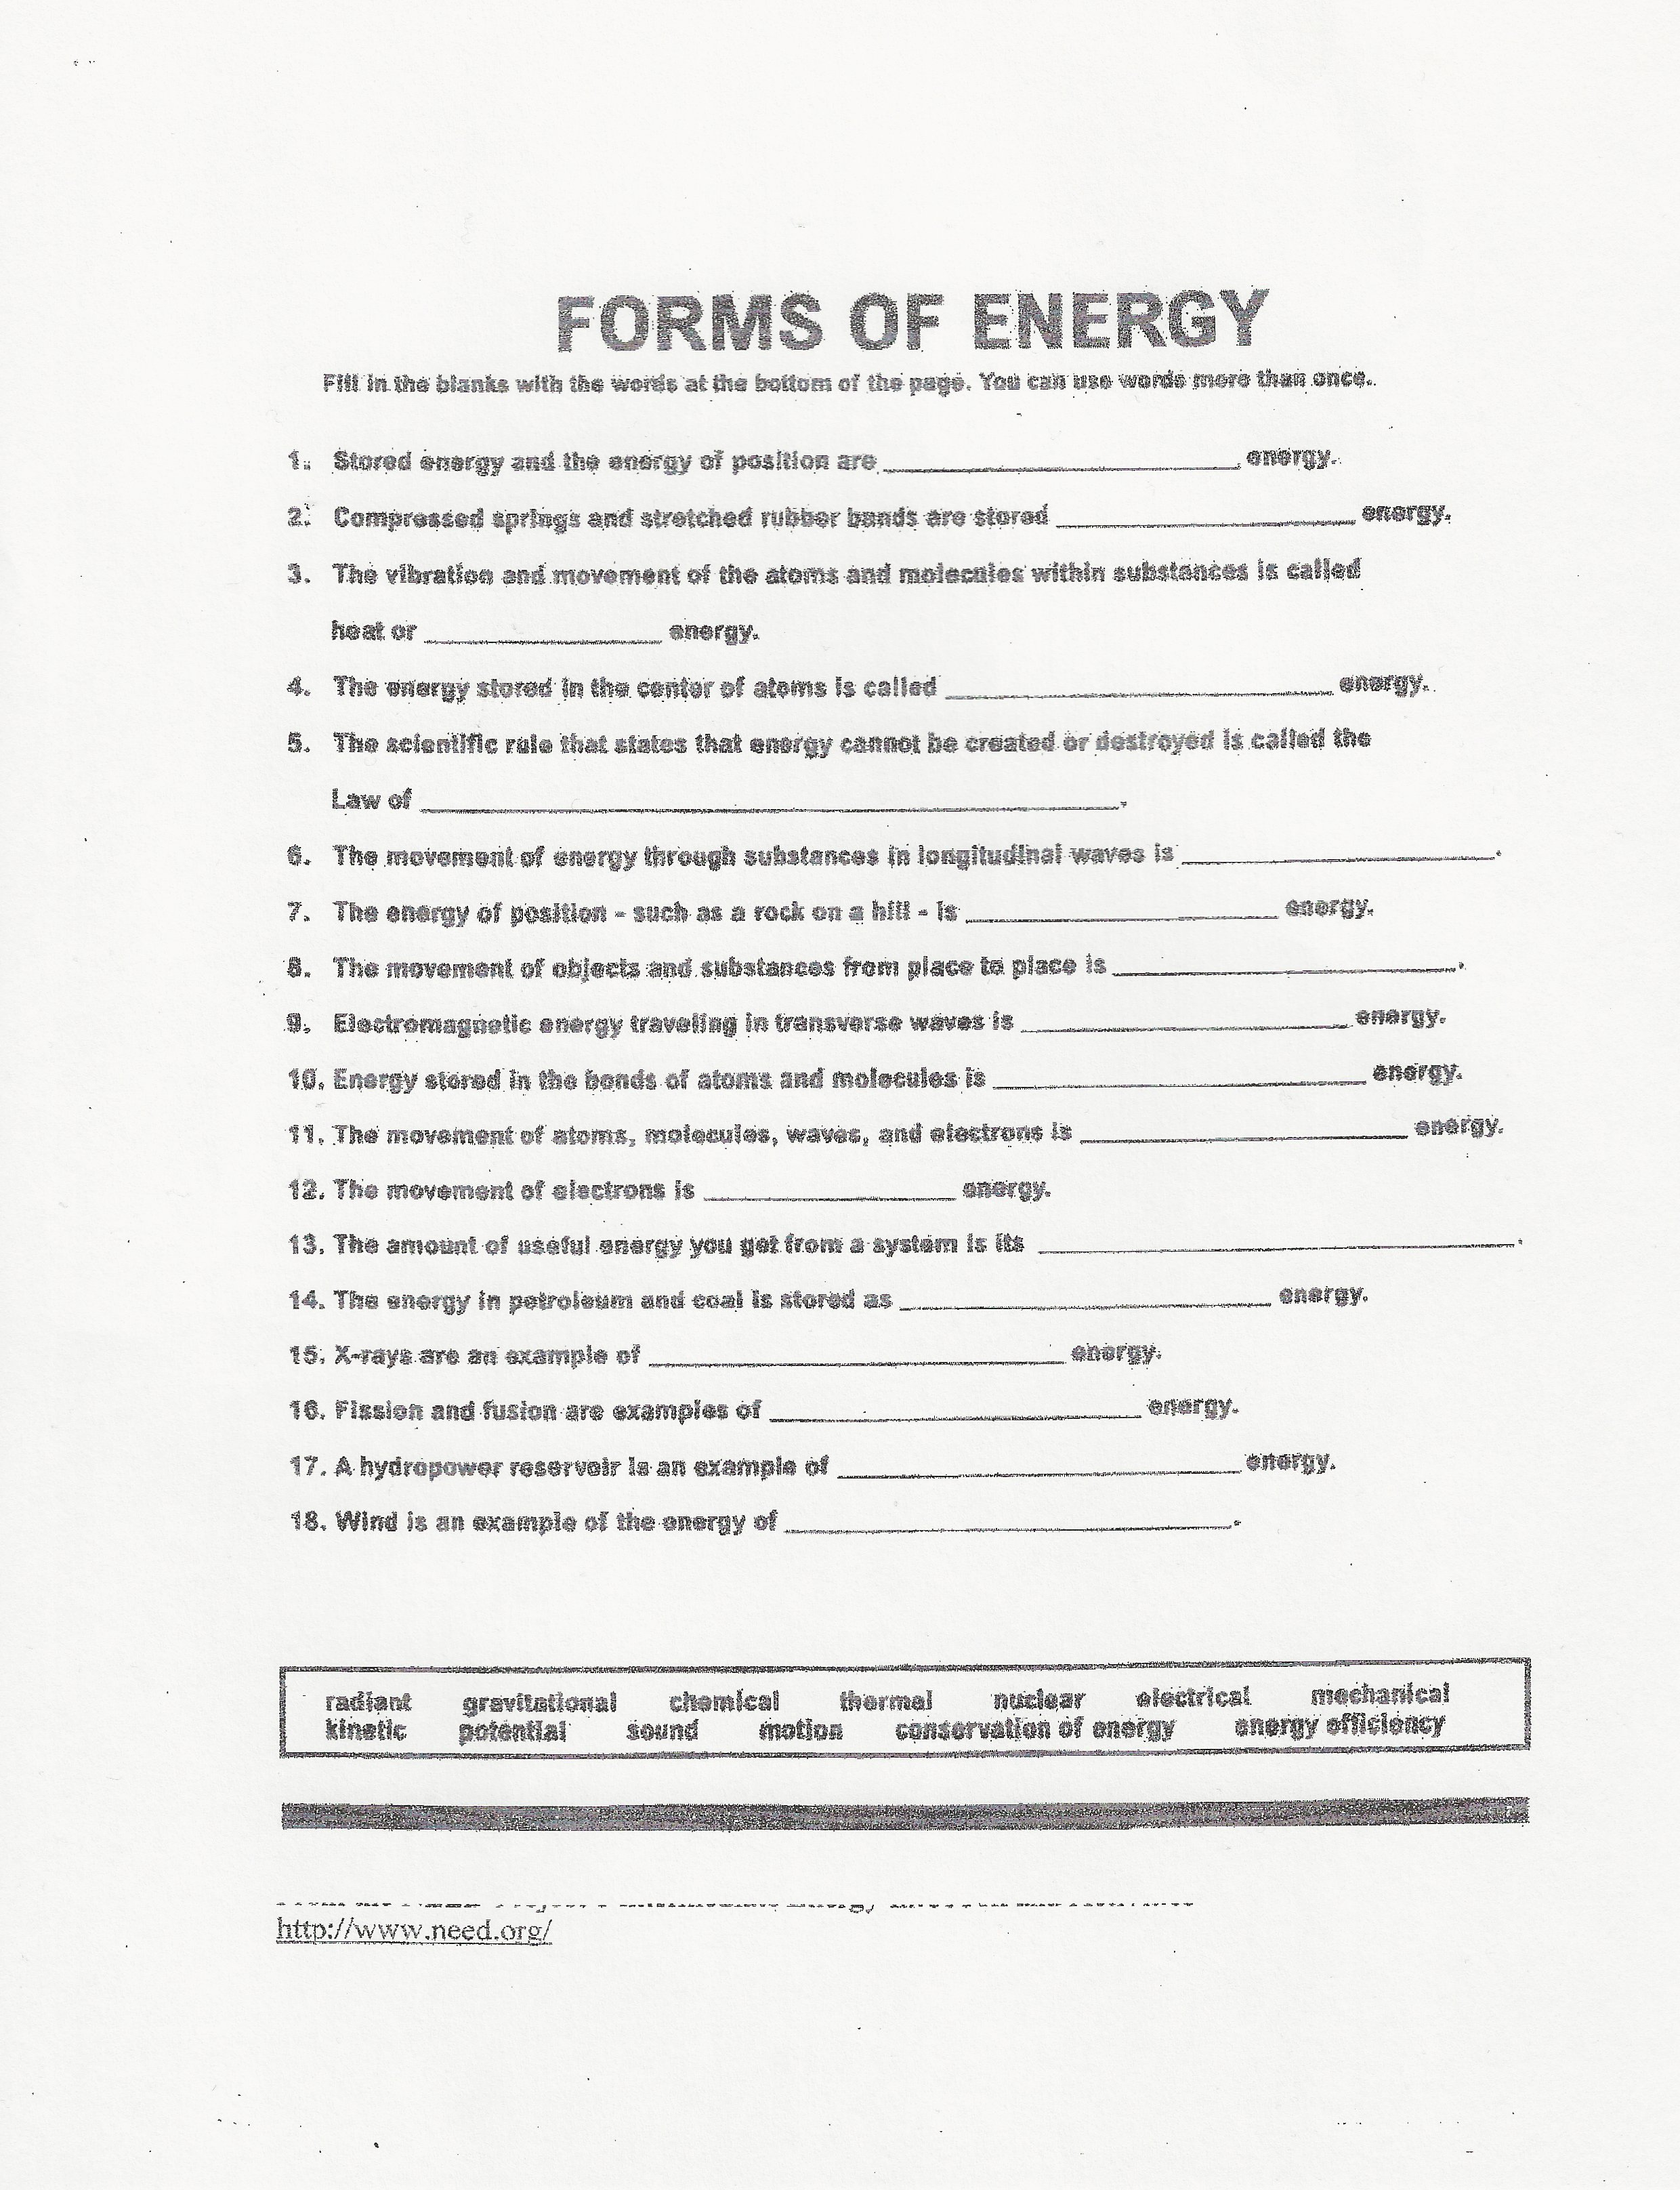 Printables Forms Of Energy Worksheet physical science quarter 1 ms athena klock teacherpine download file